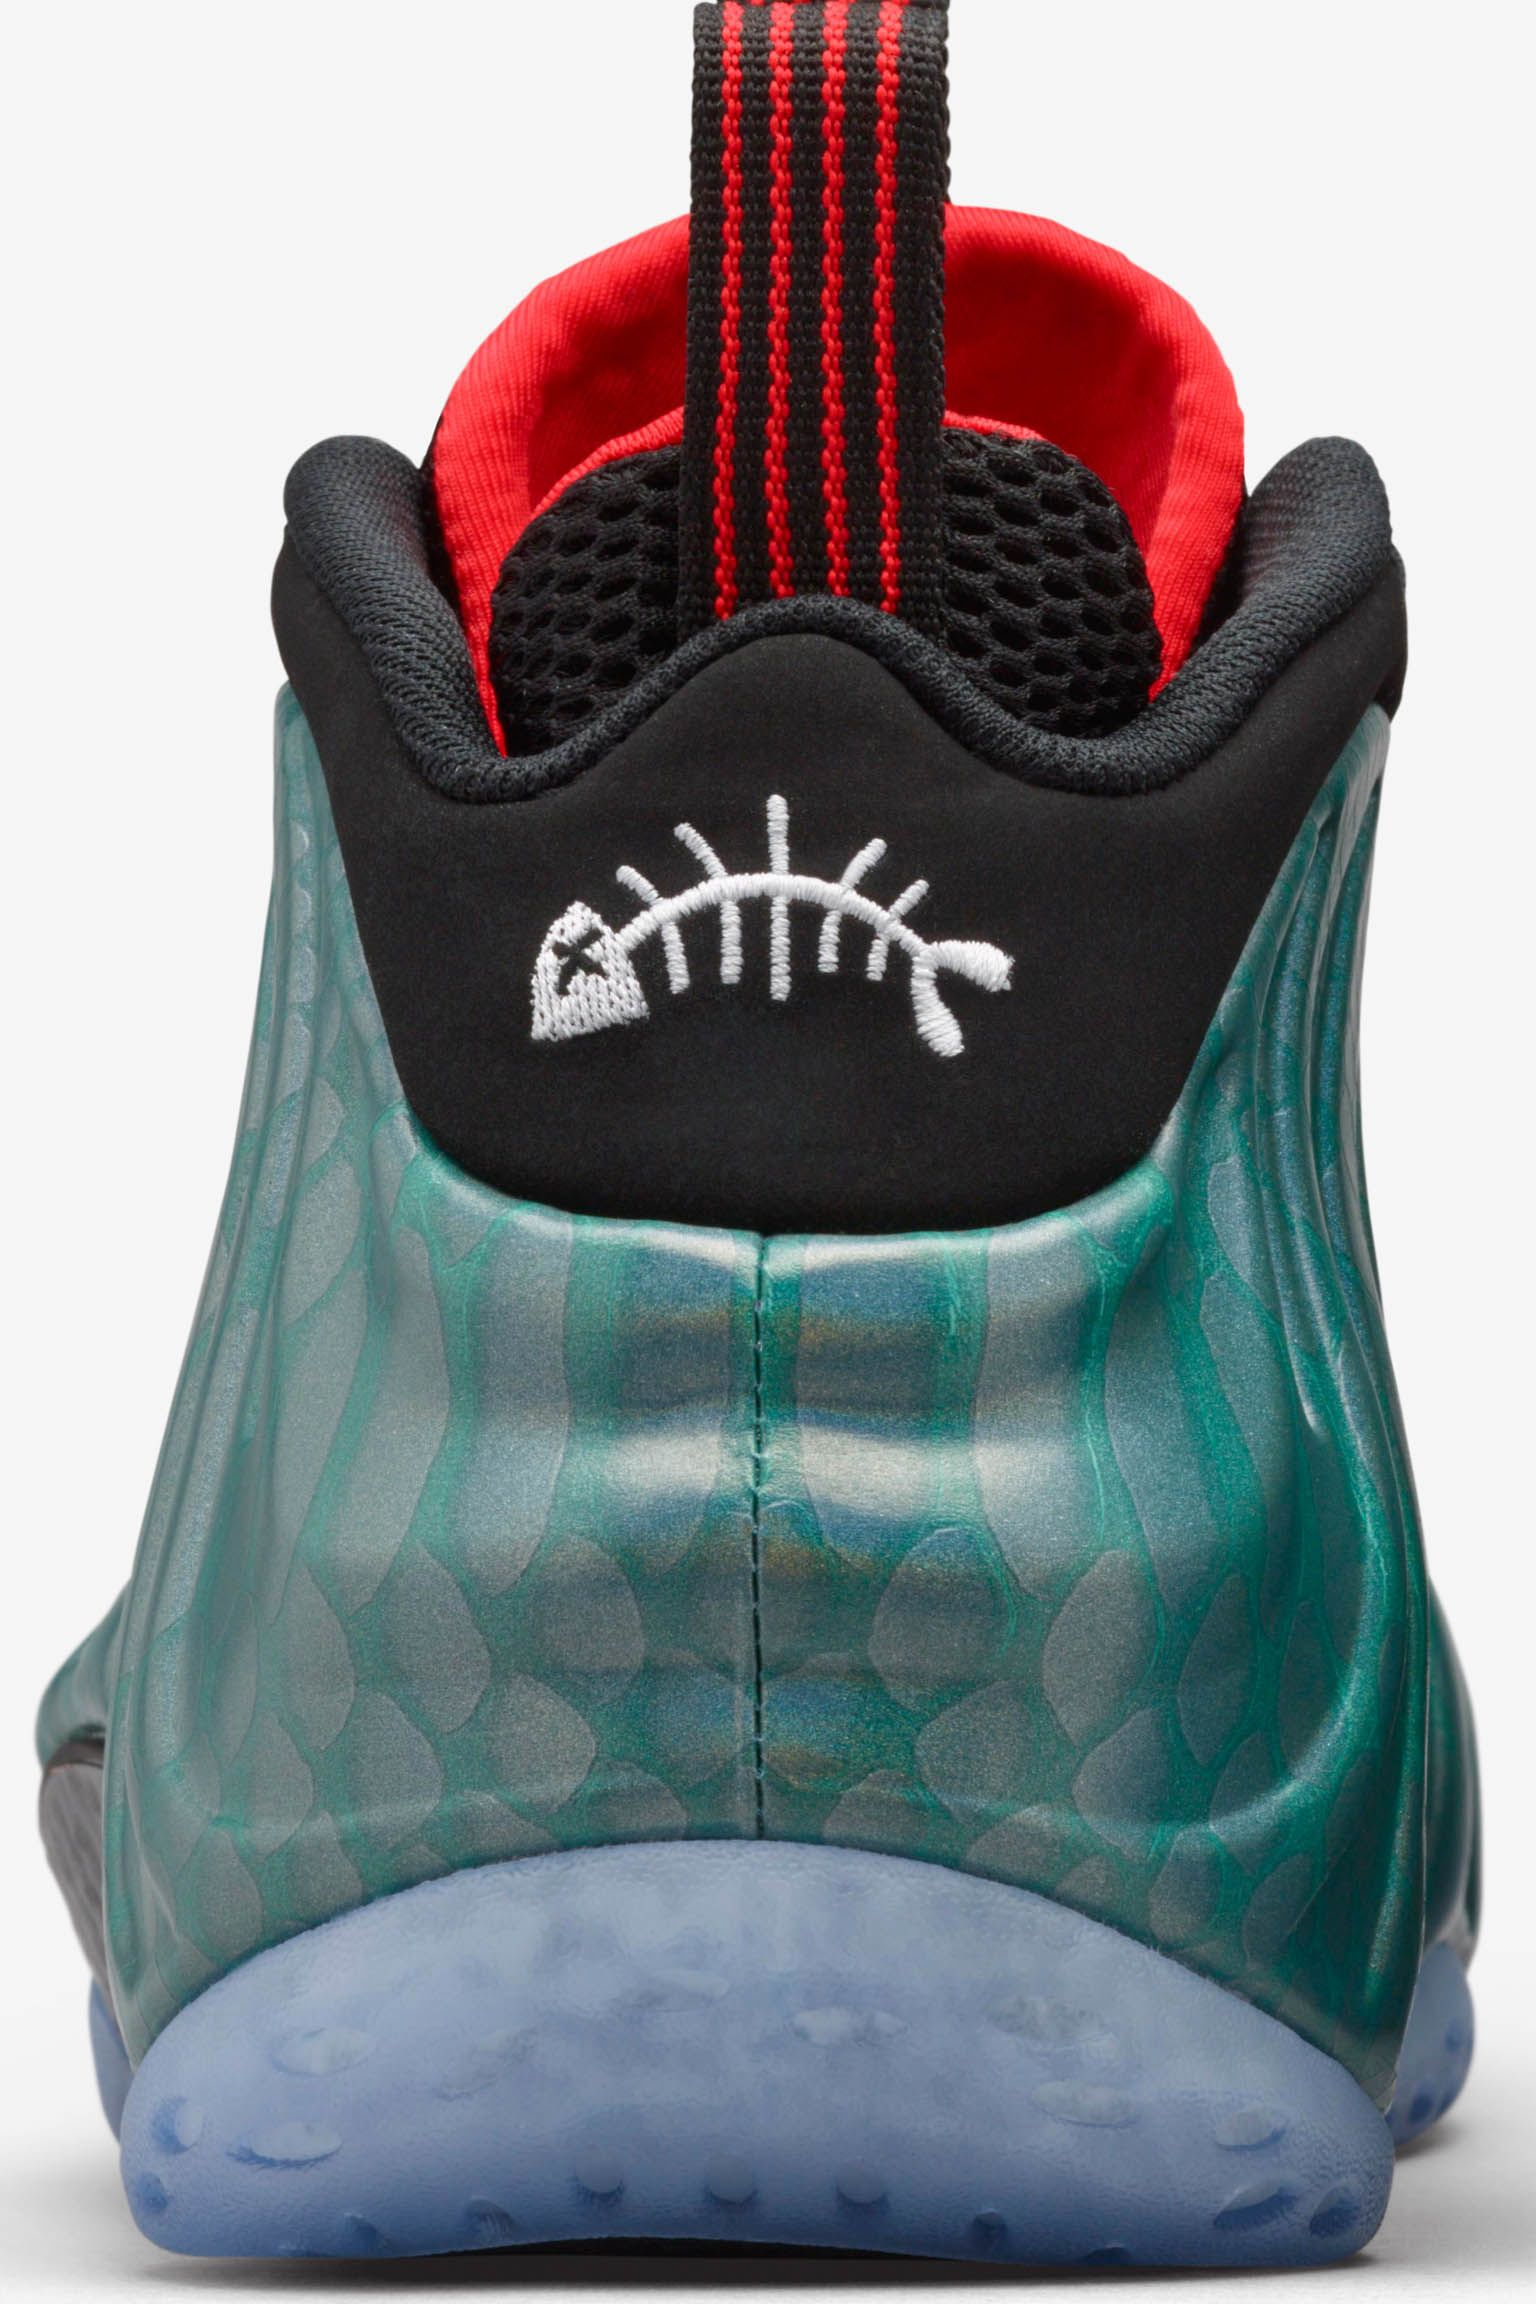 Nike Air Foamposite One 'Gone Fishing' Release Date